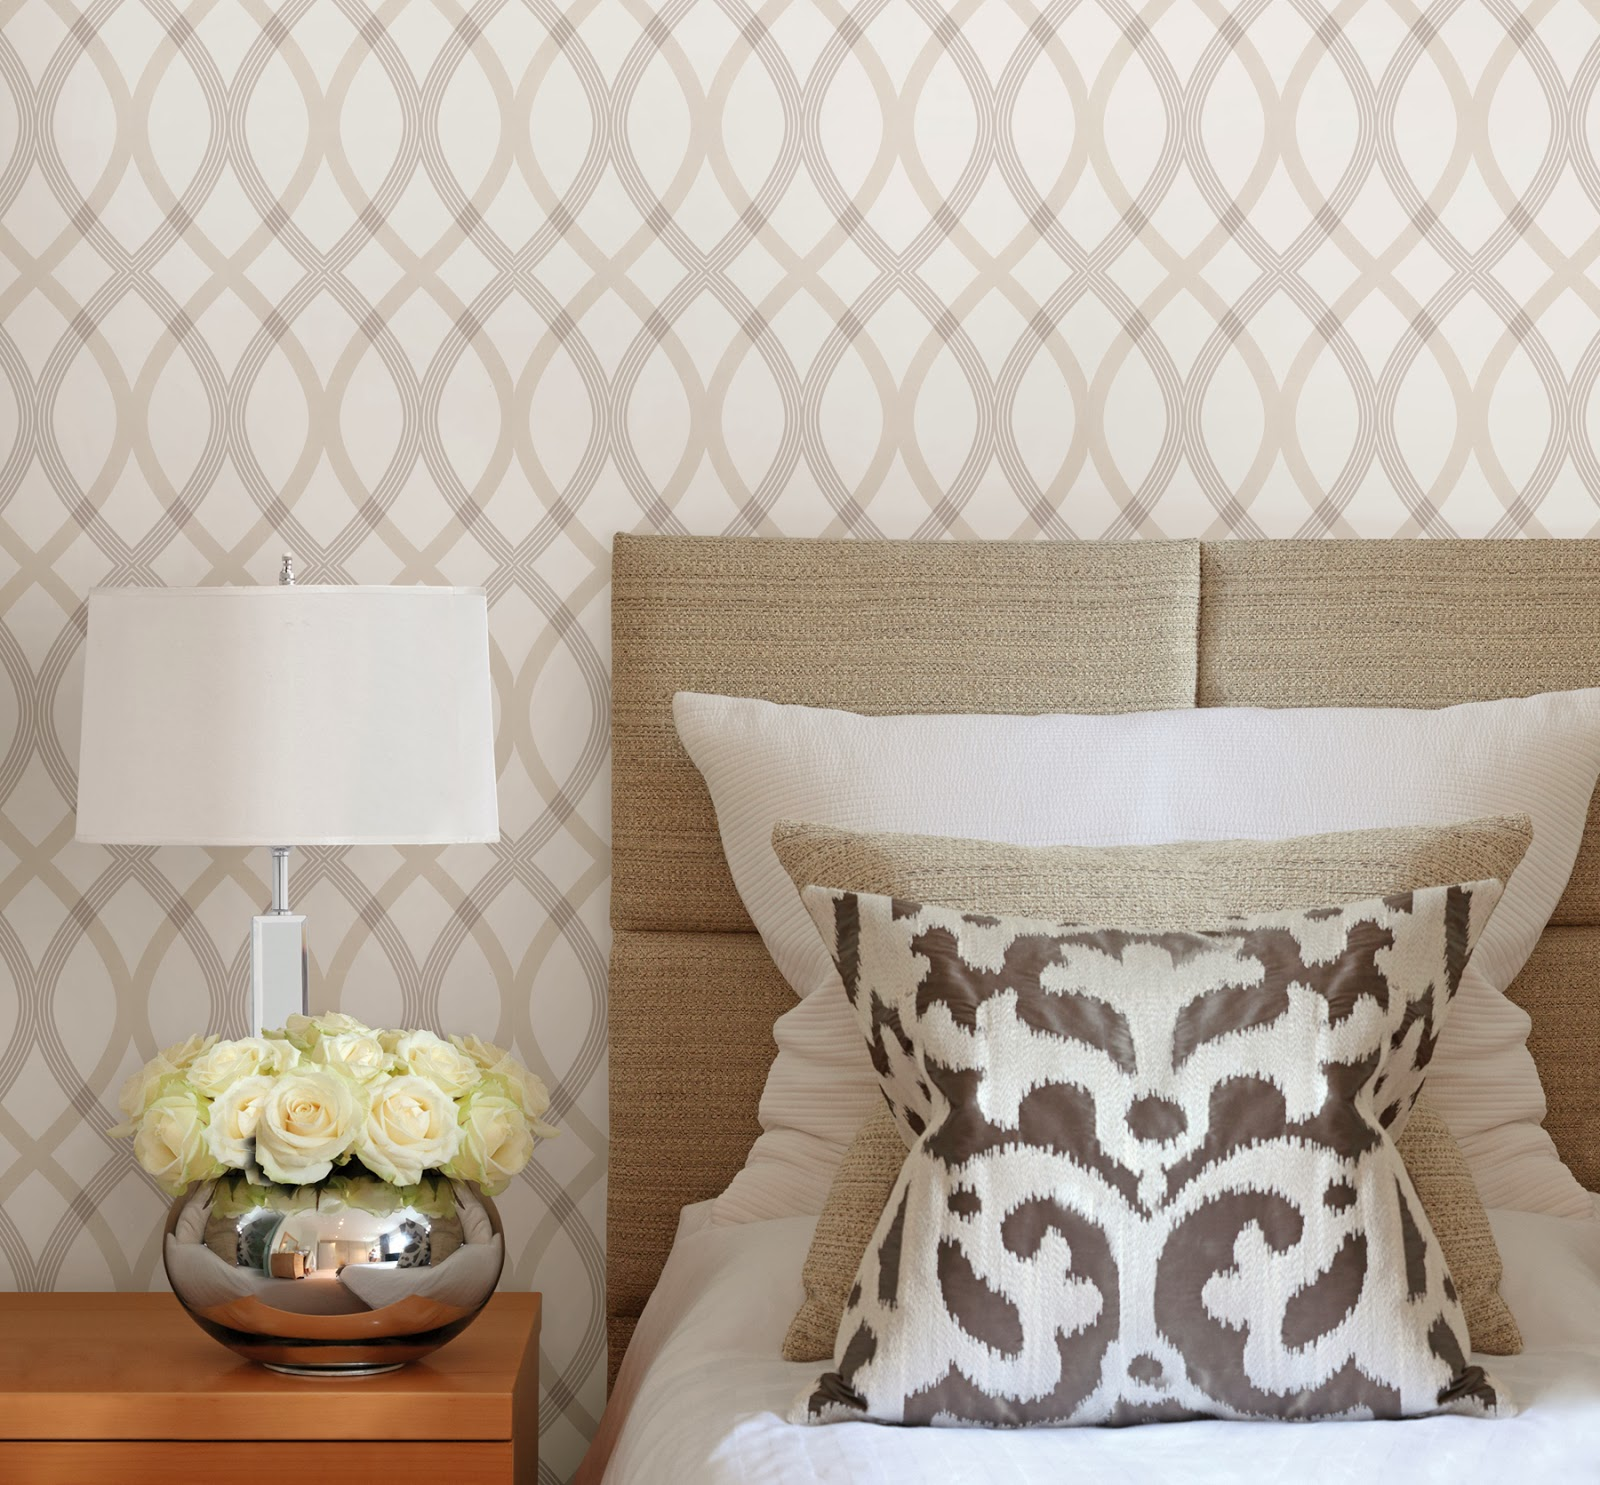 https://www.wallcoveringsforless.com/shoppingcart/prodlist1.CFM?page=_prod_detail.cfm&product_id=43424&startrow=49&search=Simple%20Space%202&pagereturn=_search.cfm